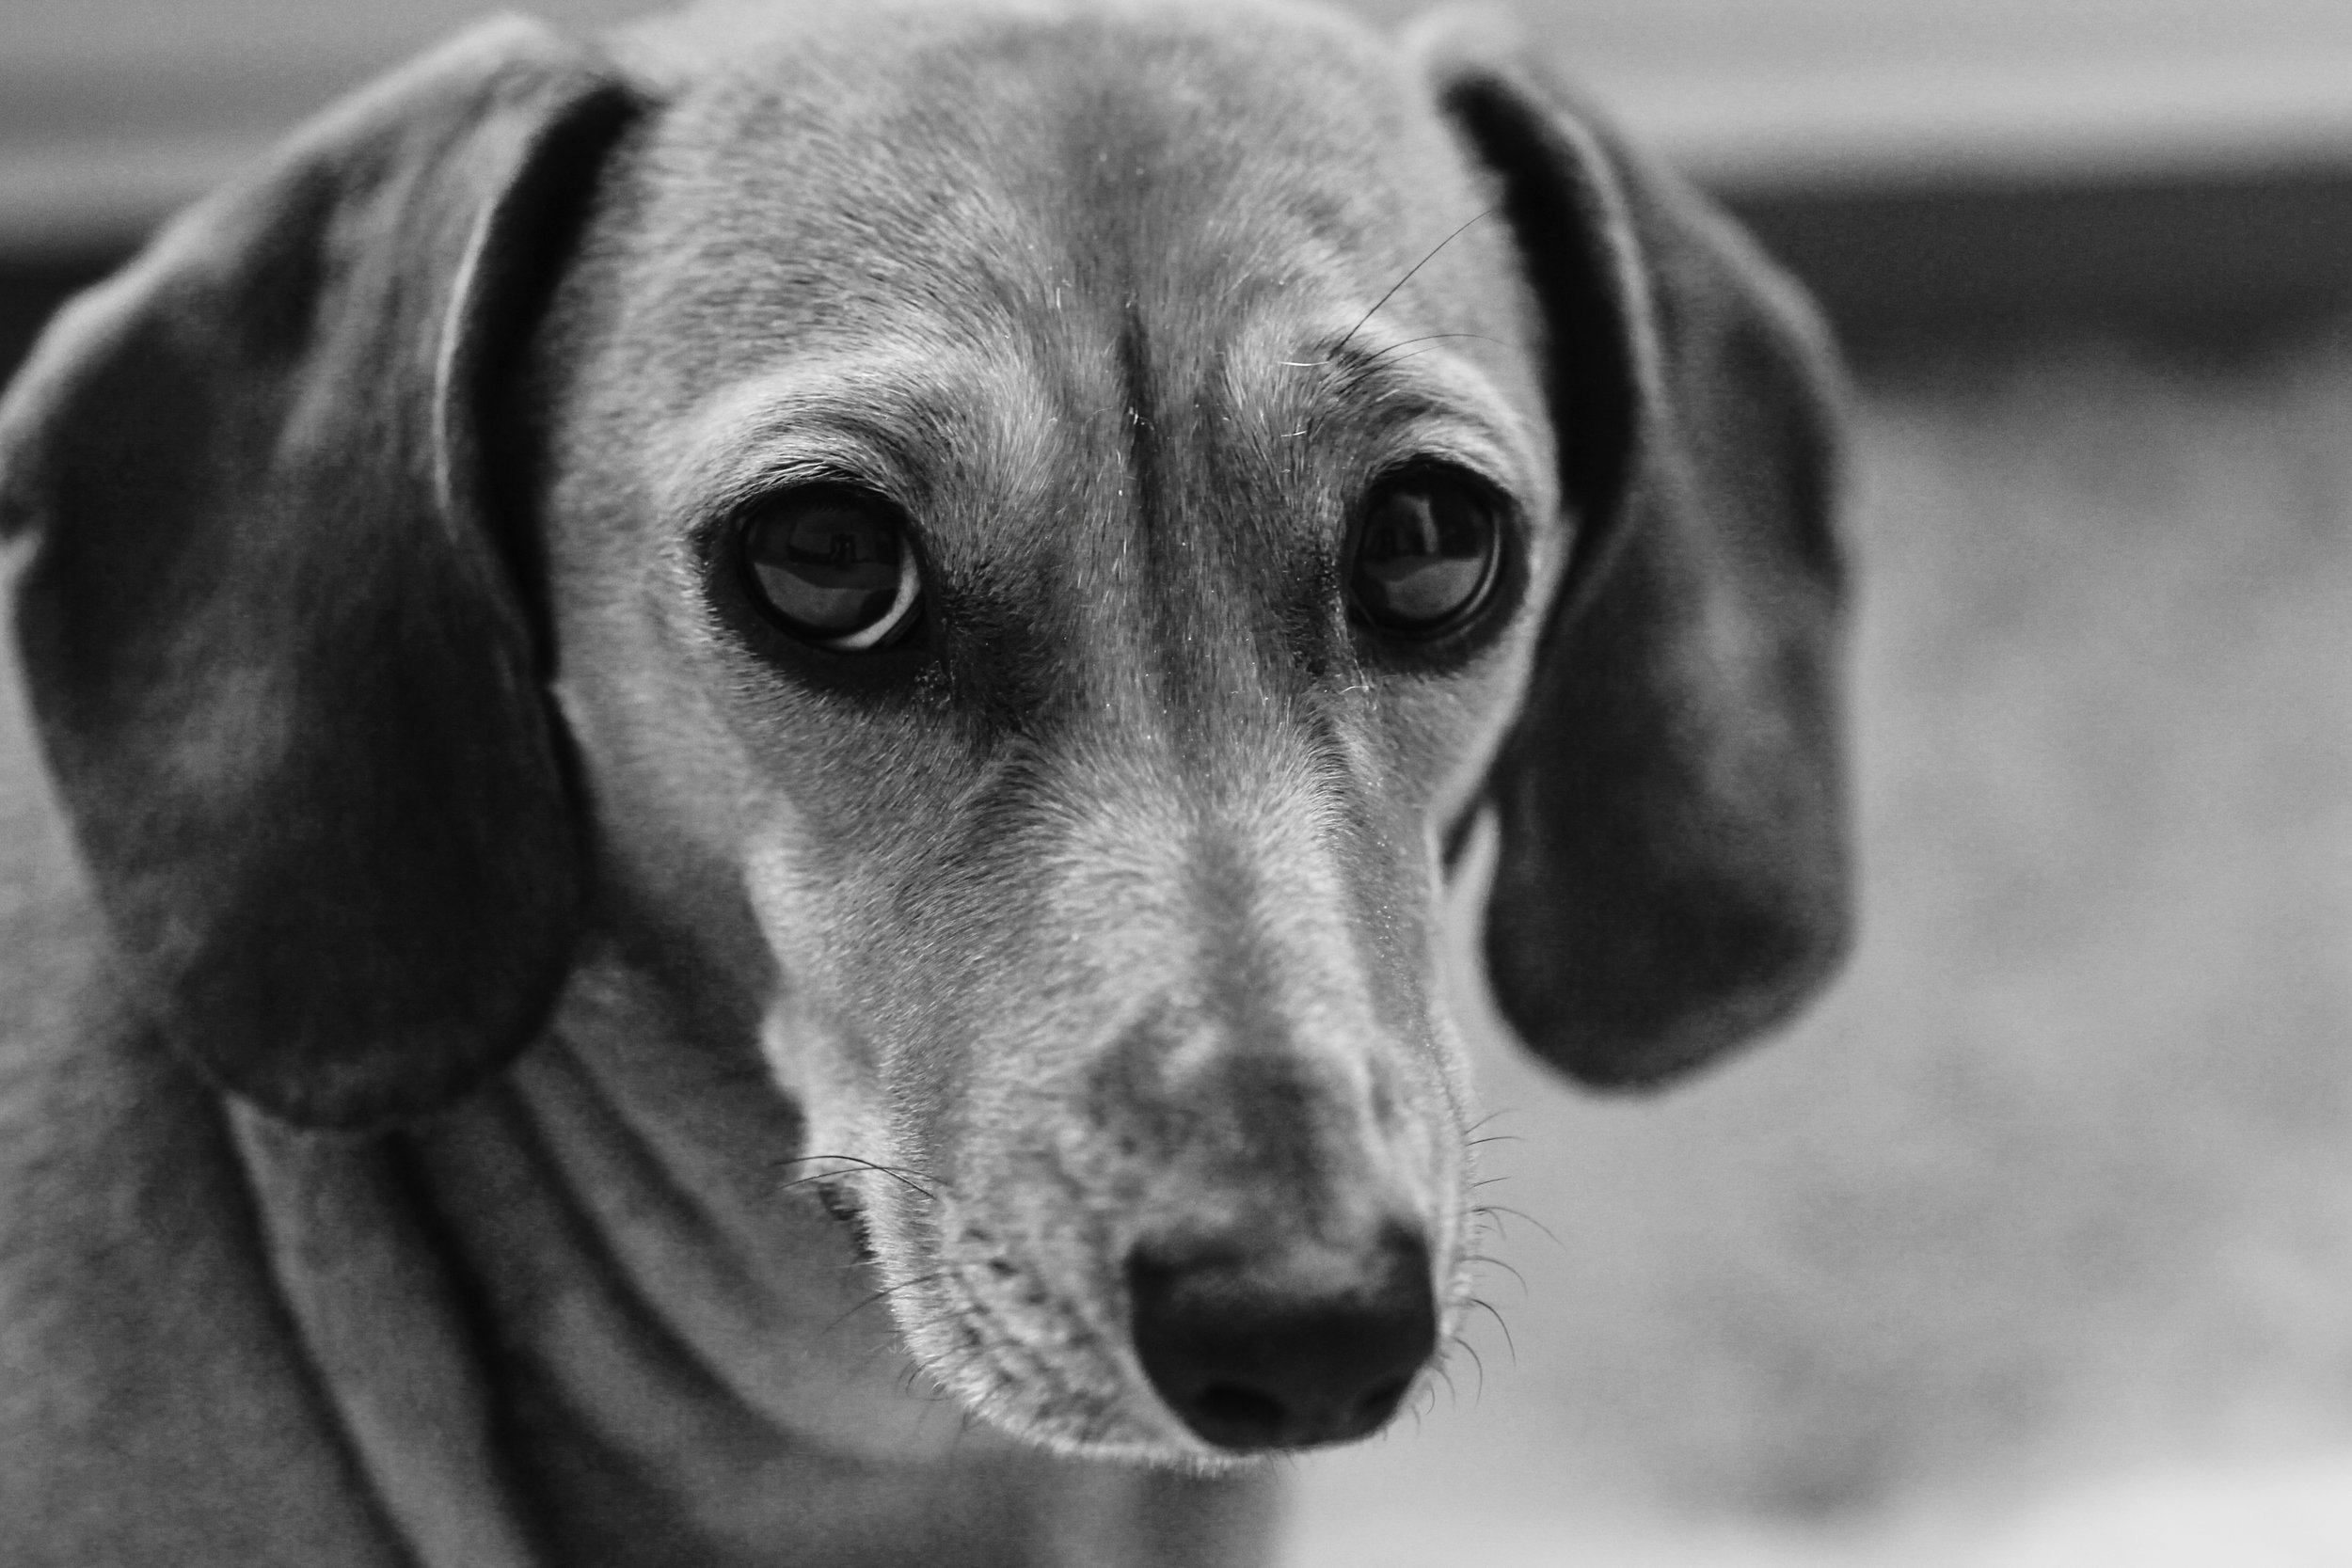 Mouse the Dachshund